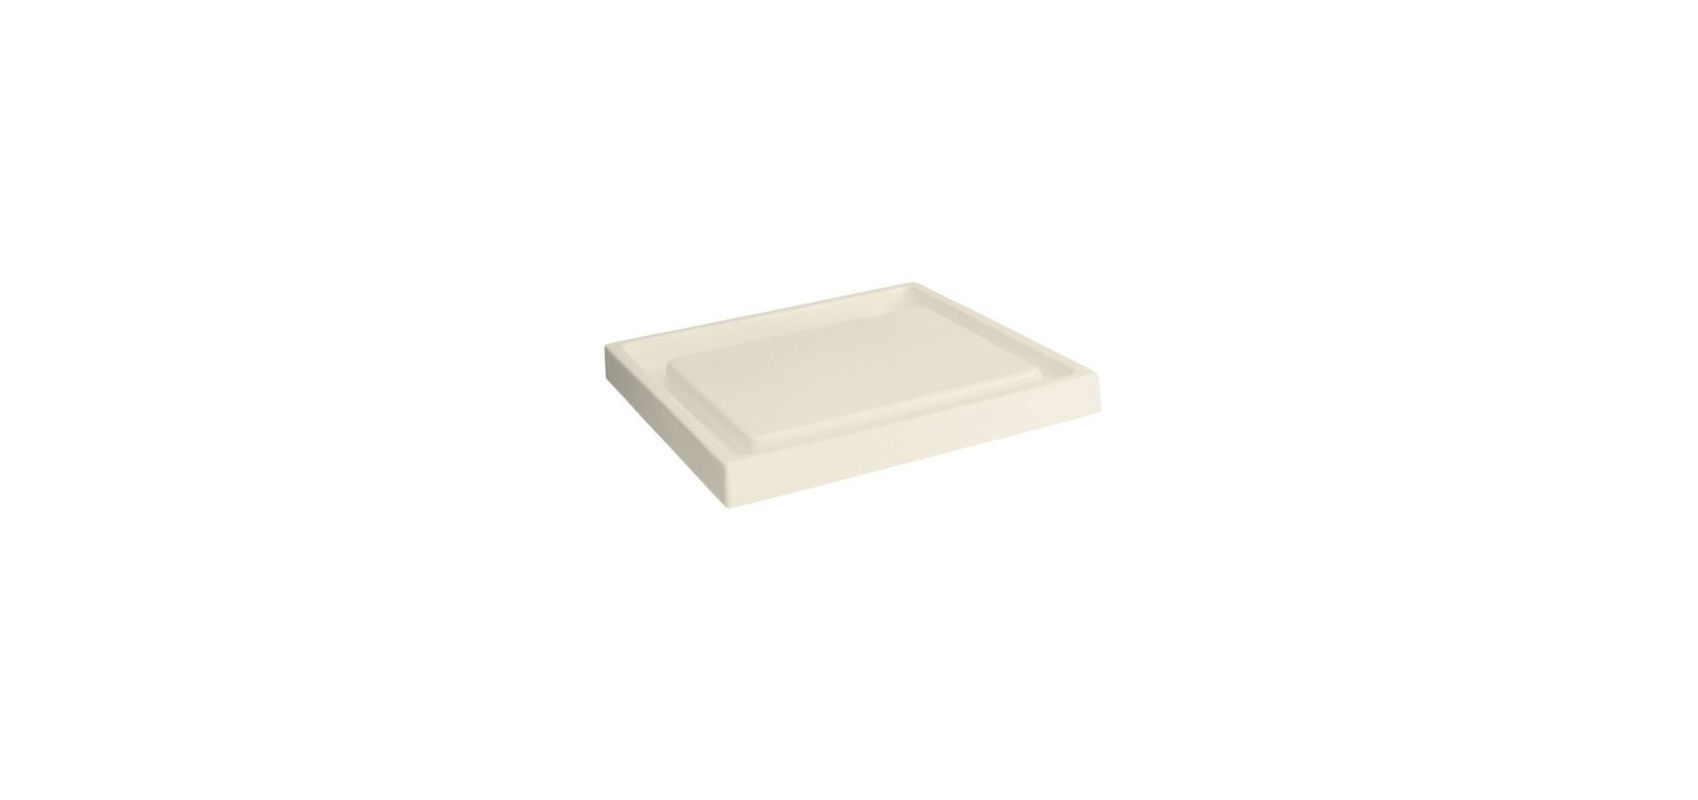 The Kohler K-2313 connects to the P-trap with the drain assembly. The ...